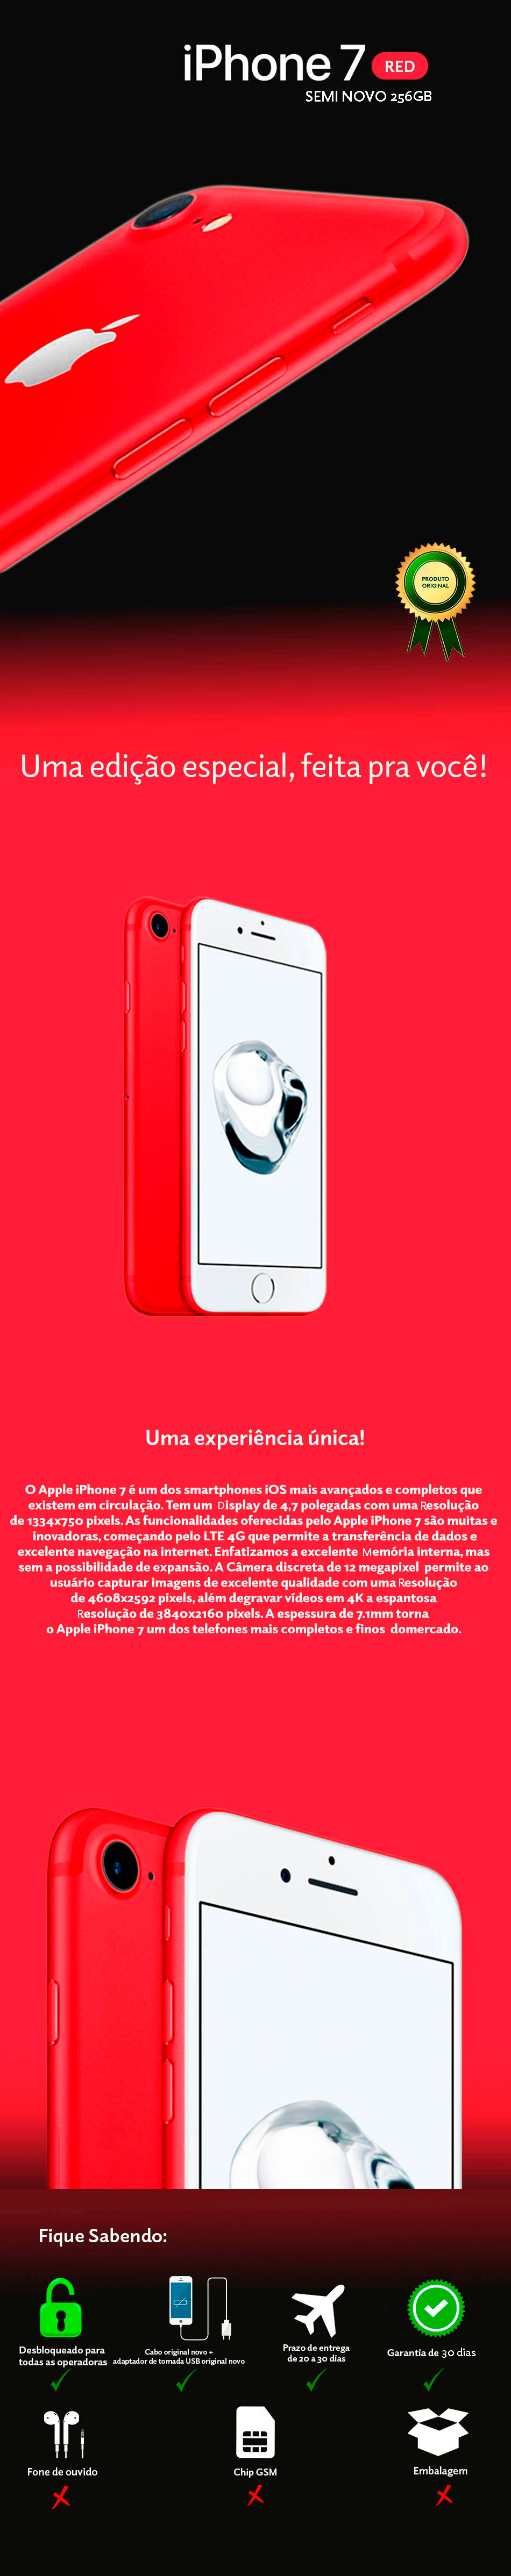 iPhone 7 Red 256GB Semi Novo